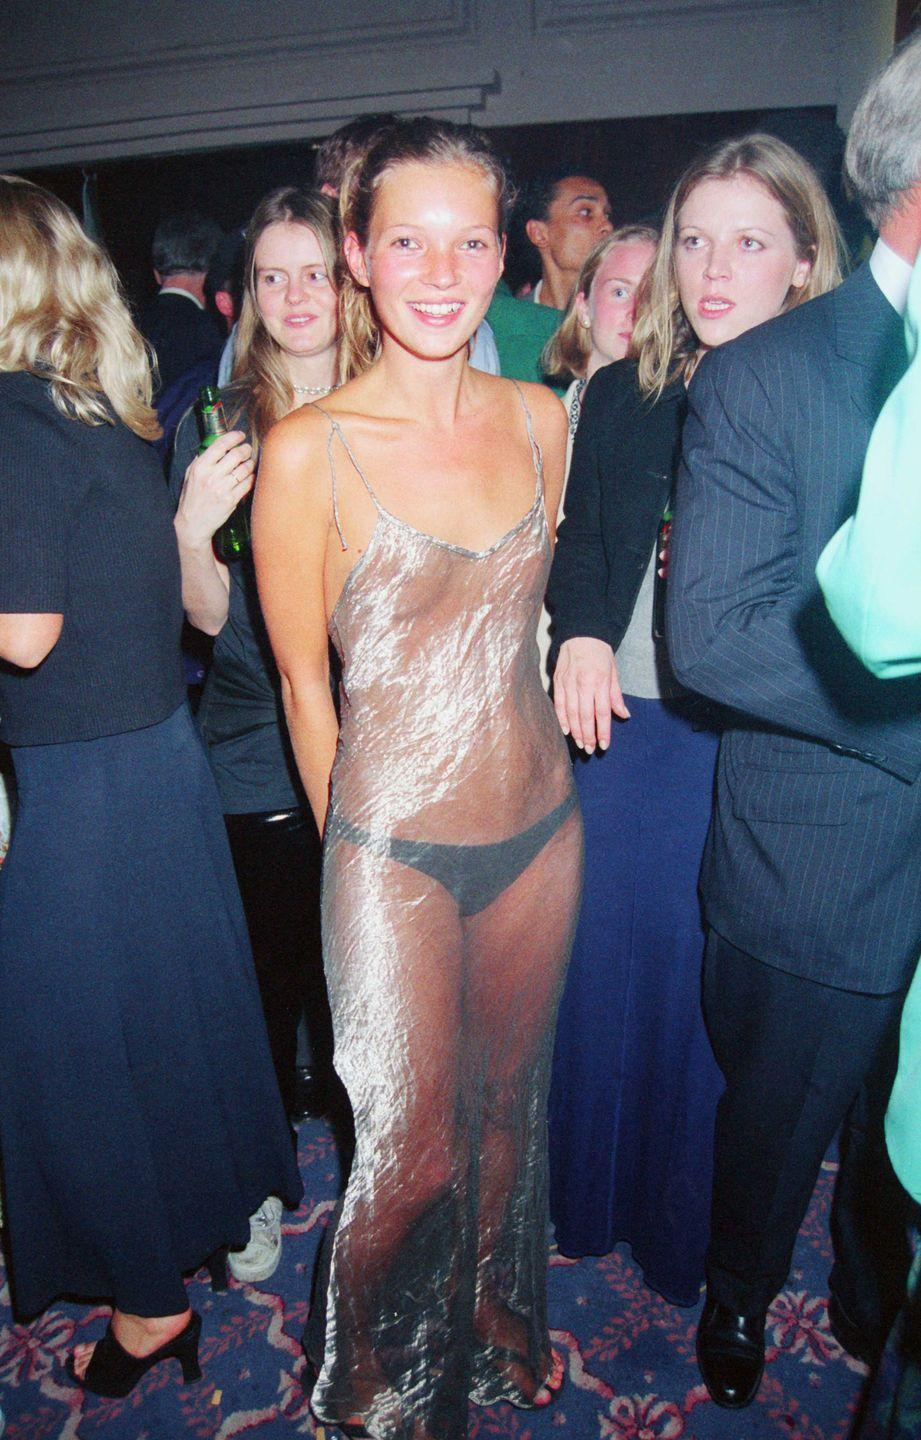 <p>Seen in London in September 1993, supermodel Kate Moss in the dress people still talk about, 27 years later.</p>